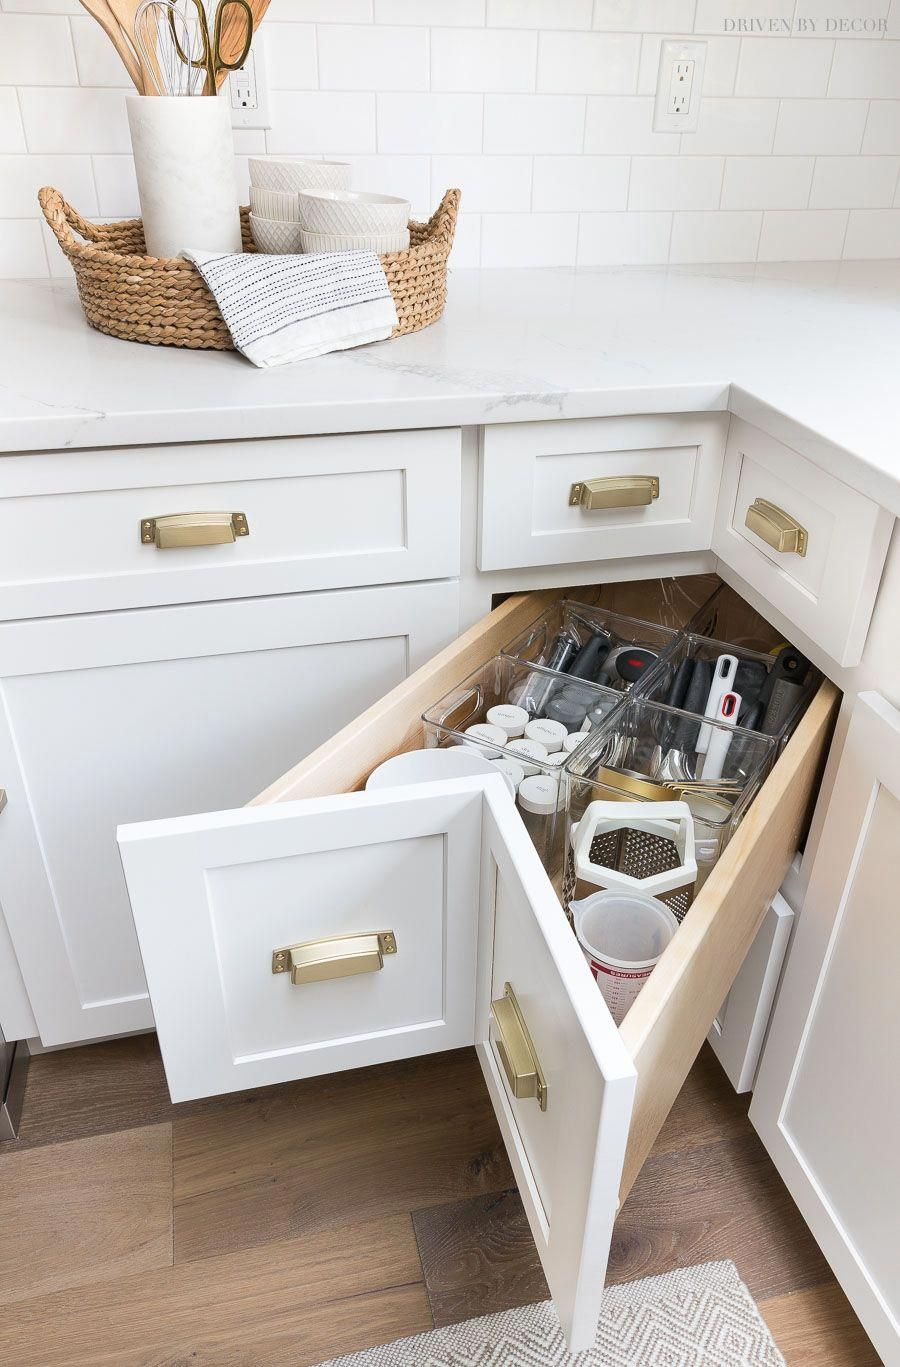 Photo of Cabinet Storage & Organization Ideas From Our New Kitchen!